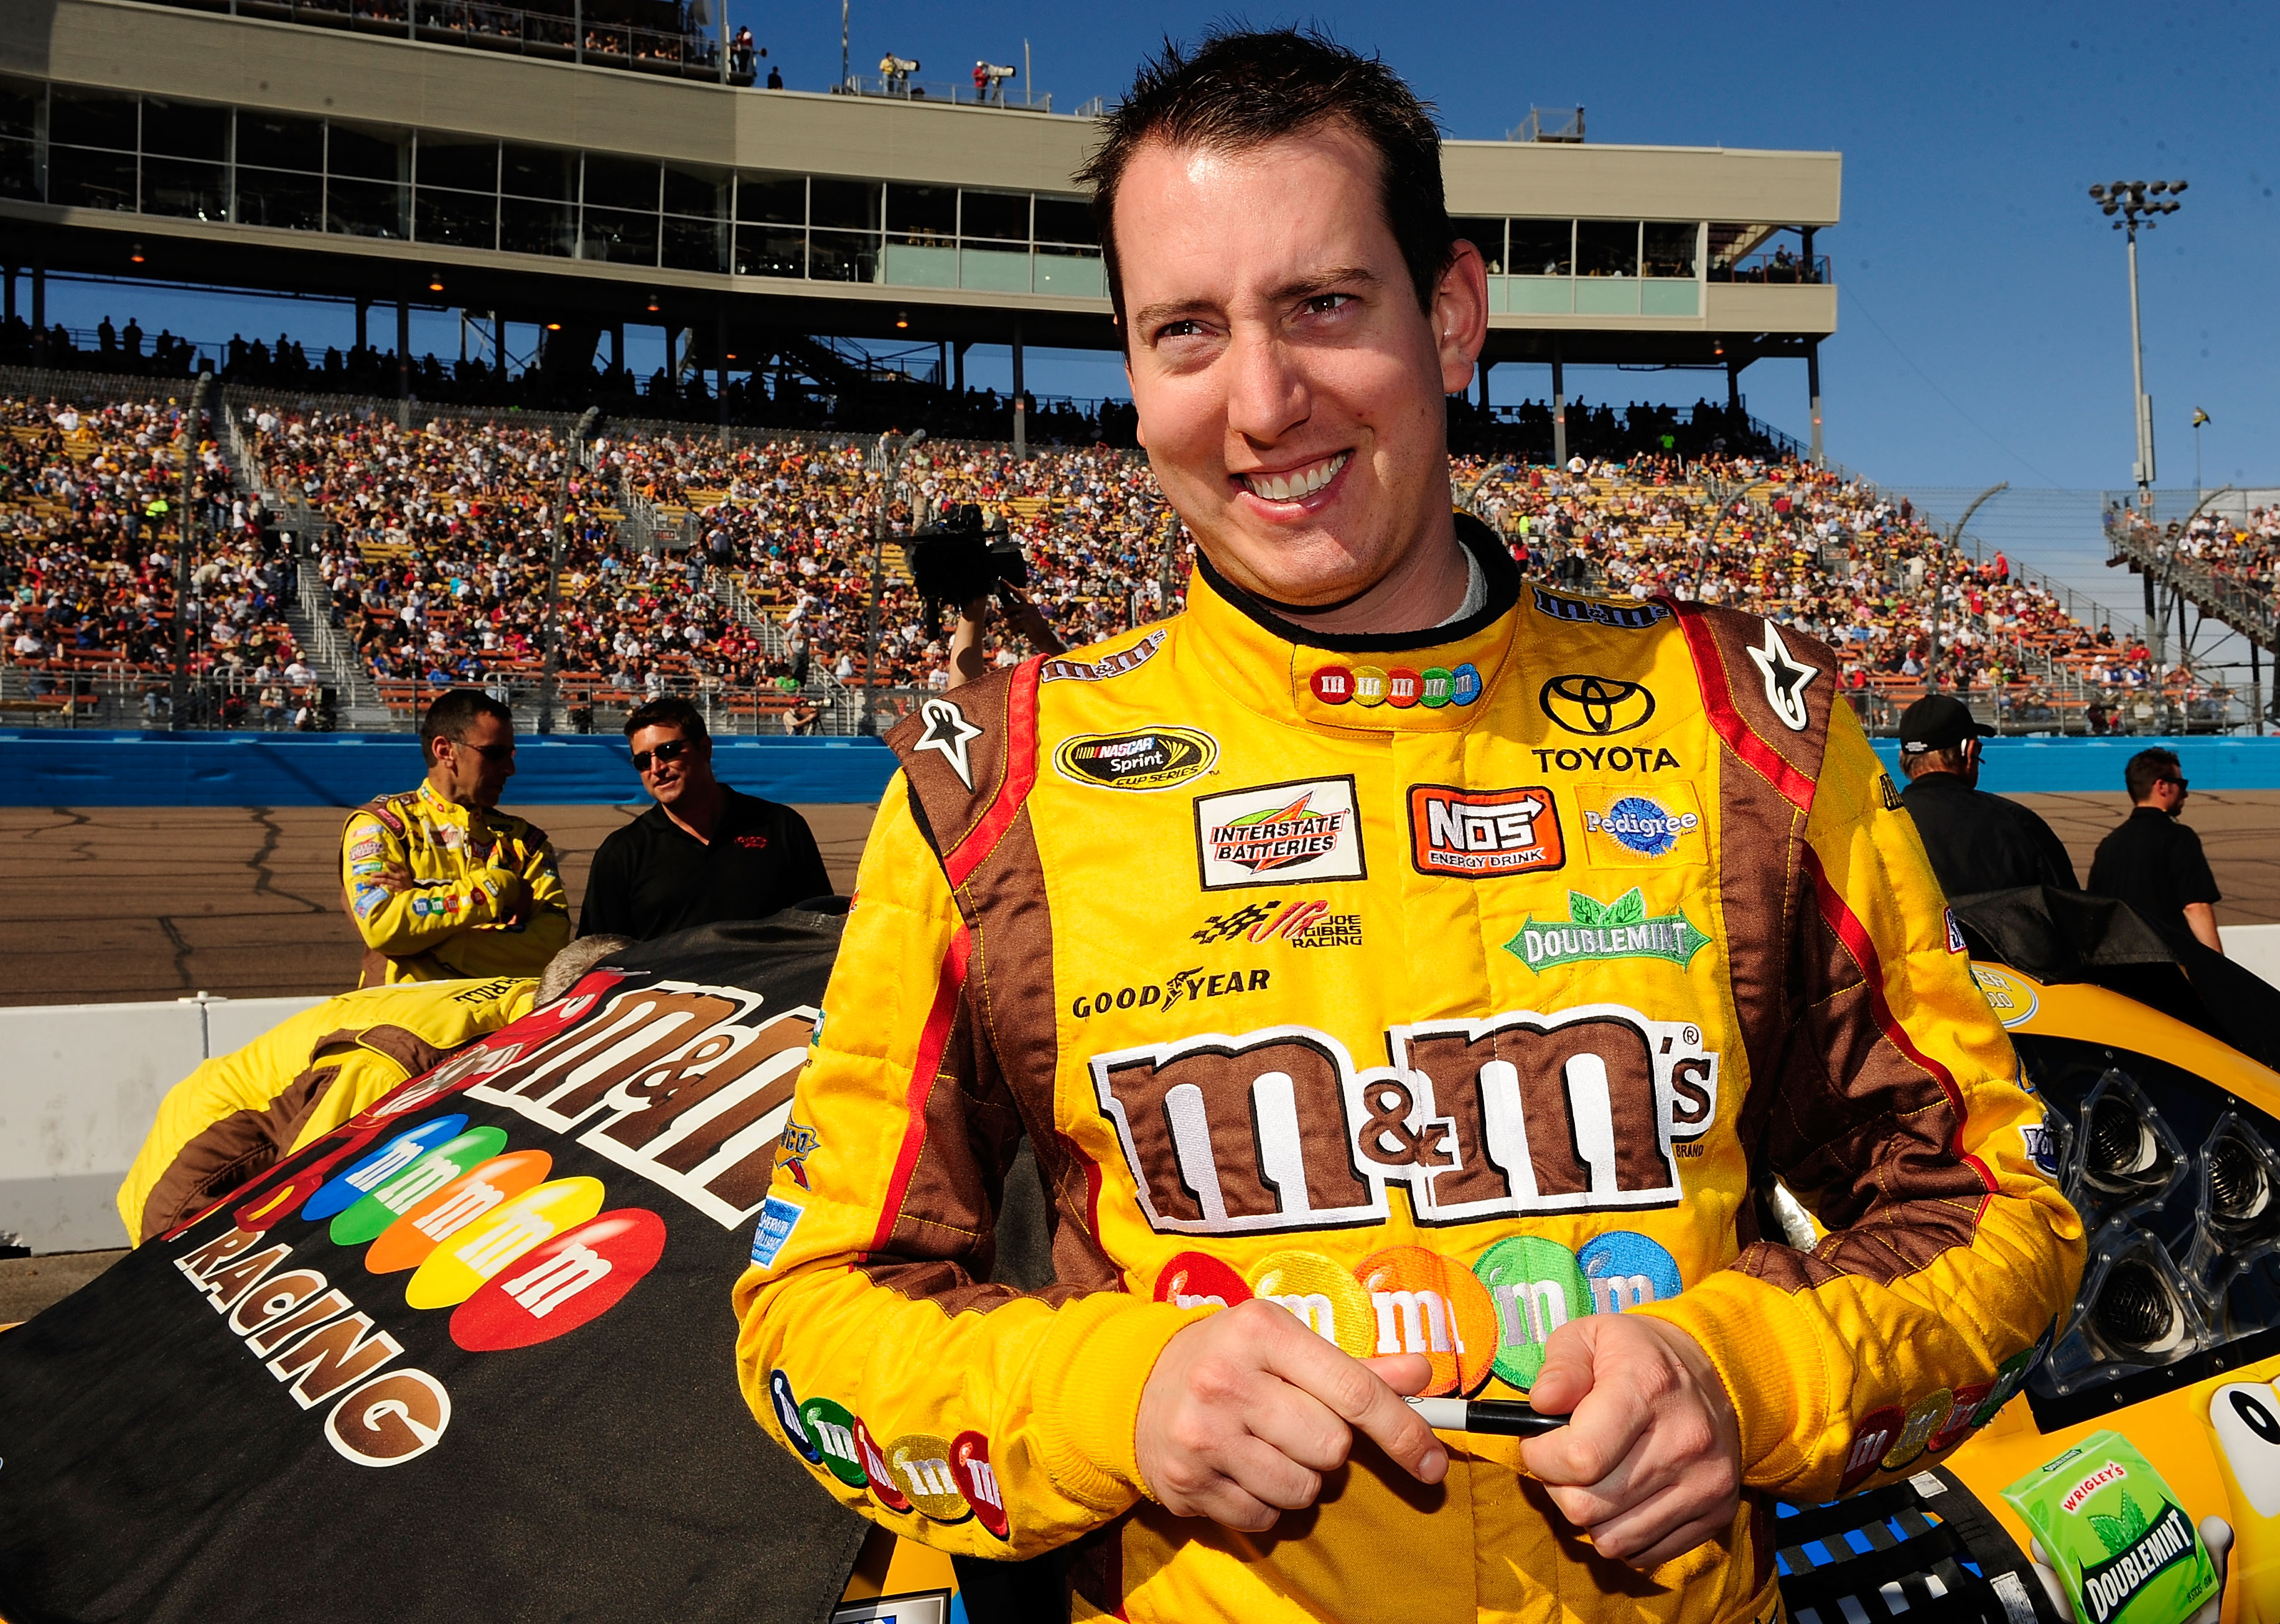 AVONDALE, AZ - NOVEMBER 14:  Kyle Busch, driver of the #18 M&M'sToyota, stands by his car prior to the NASCAR Sprint Cup Series Kobalt Tools 500 at Phoenix International Raceway on November 14, 2010 in Avondale, Arizona.  (Photo by Rusty Jarrett/Getty Ima